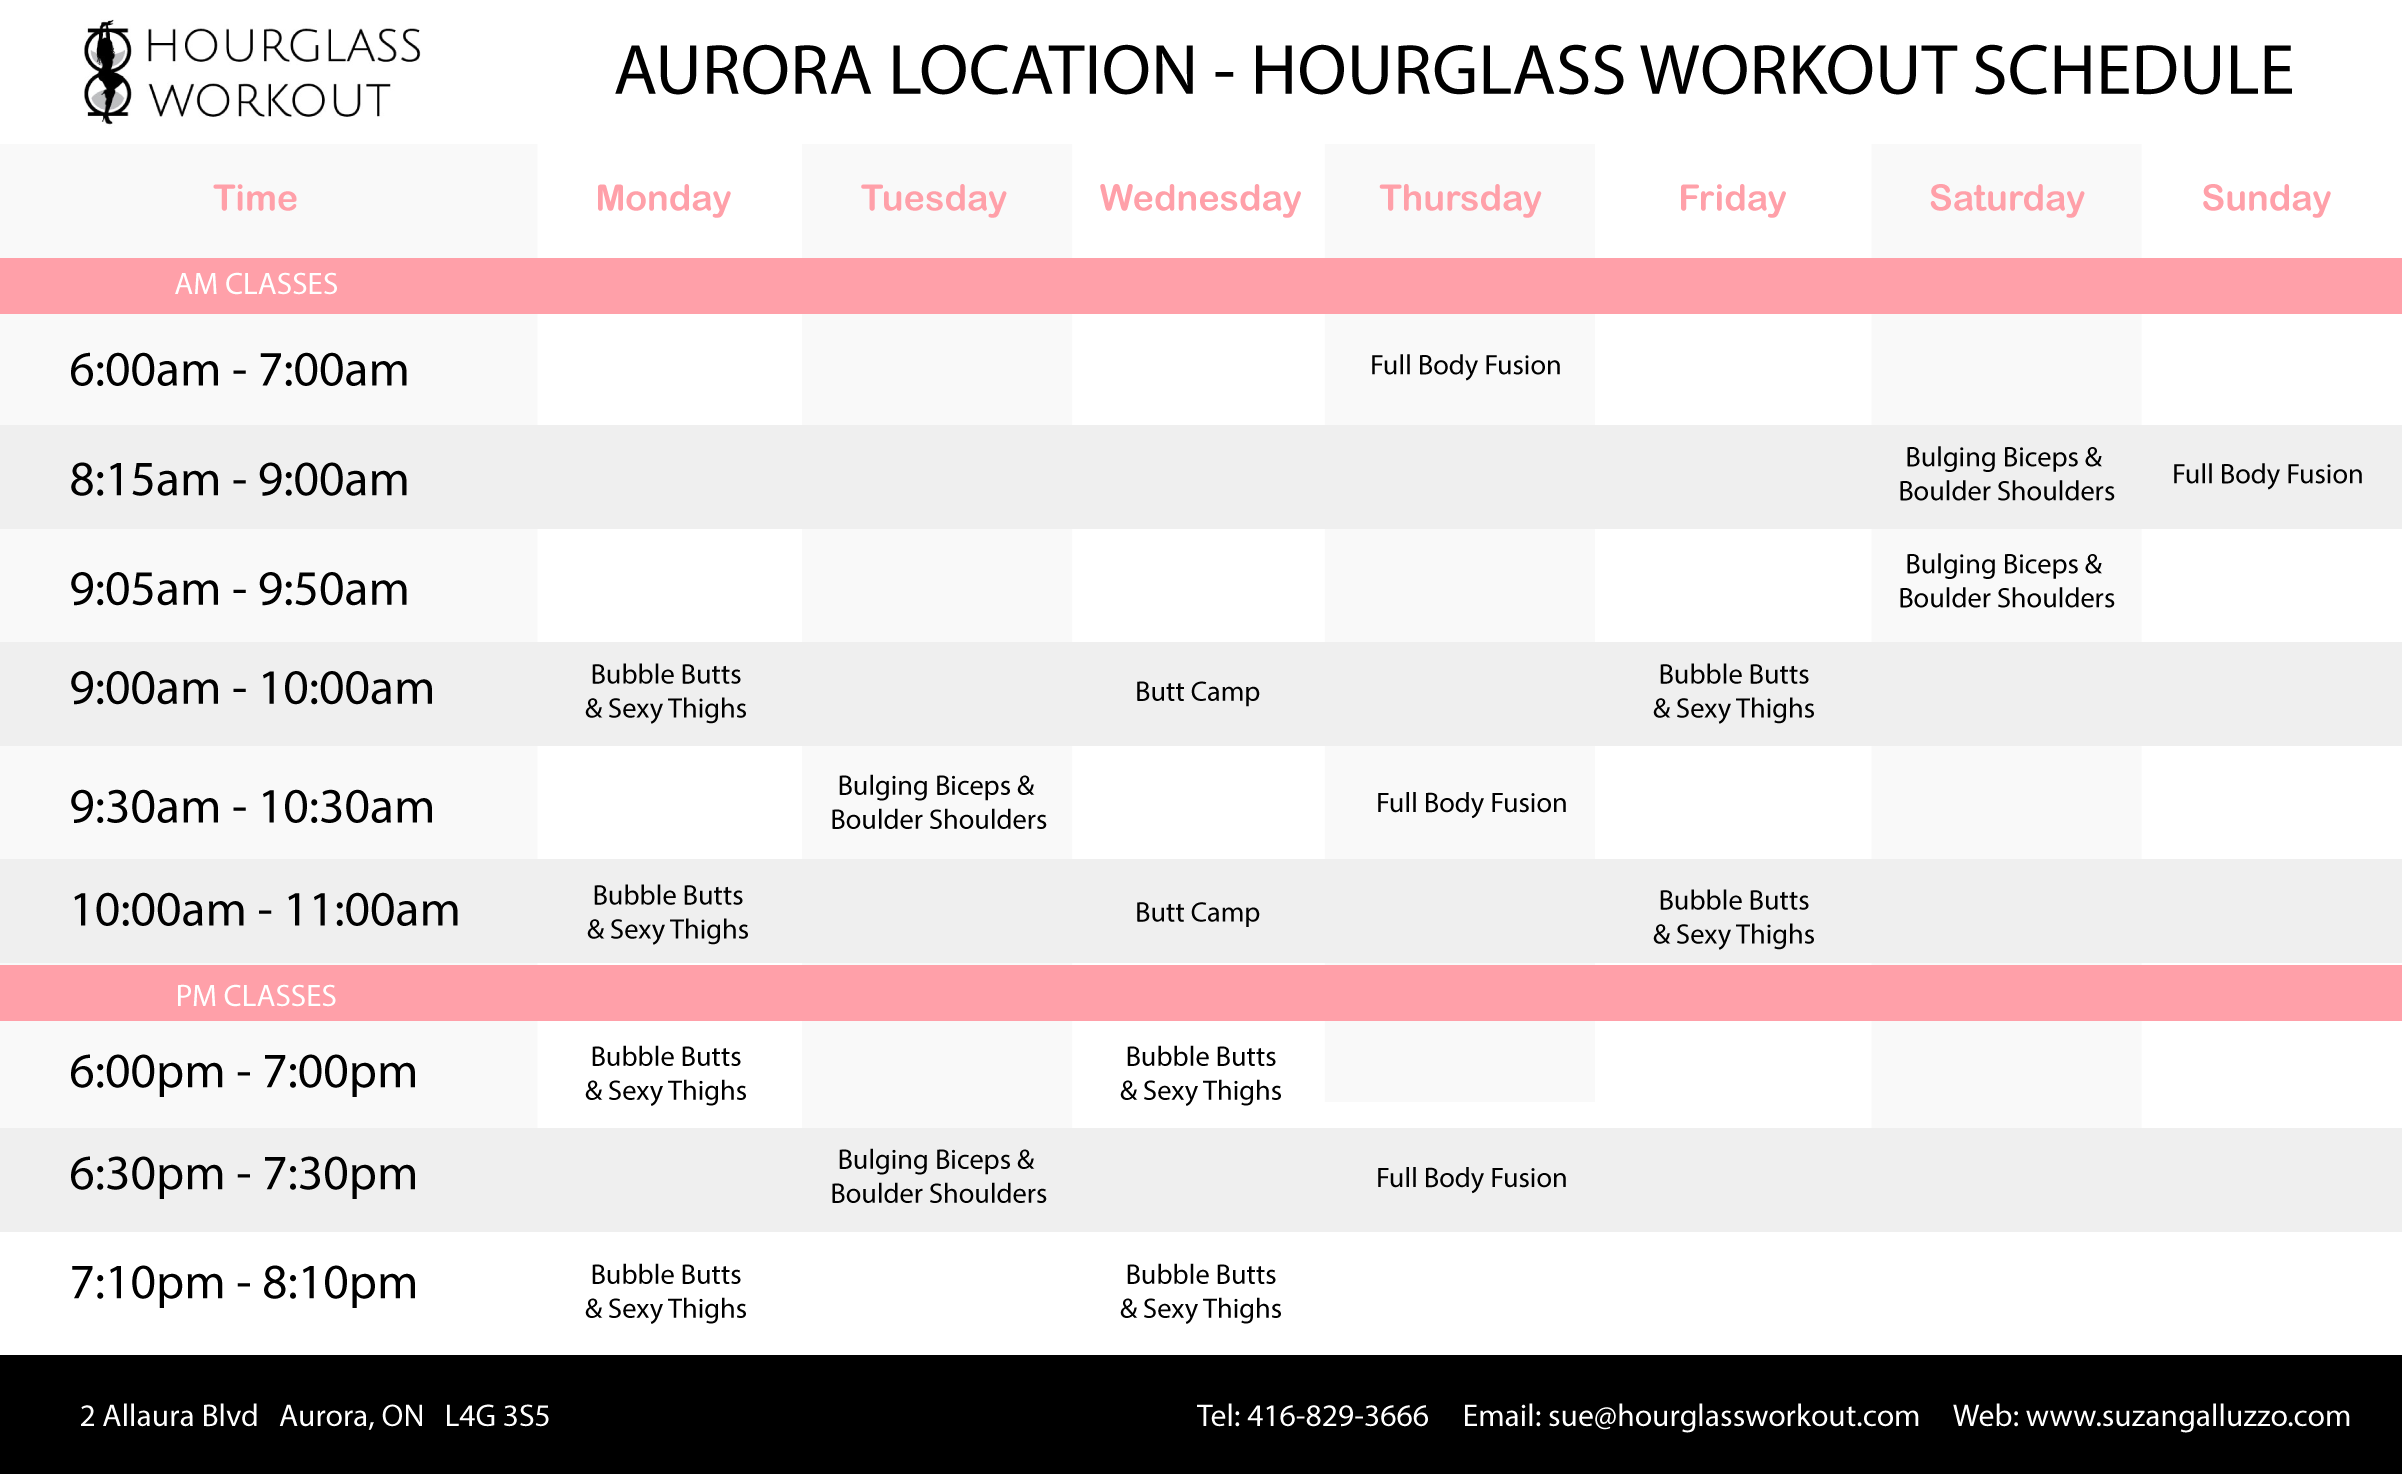 Hourglass Workout - Aurora Studio